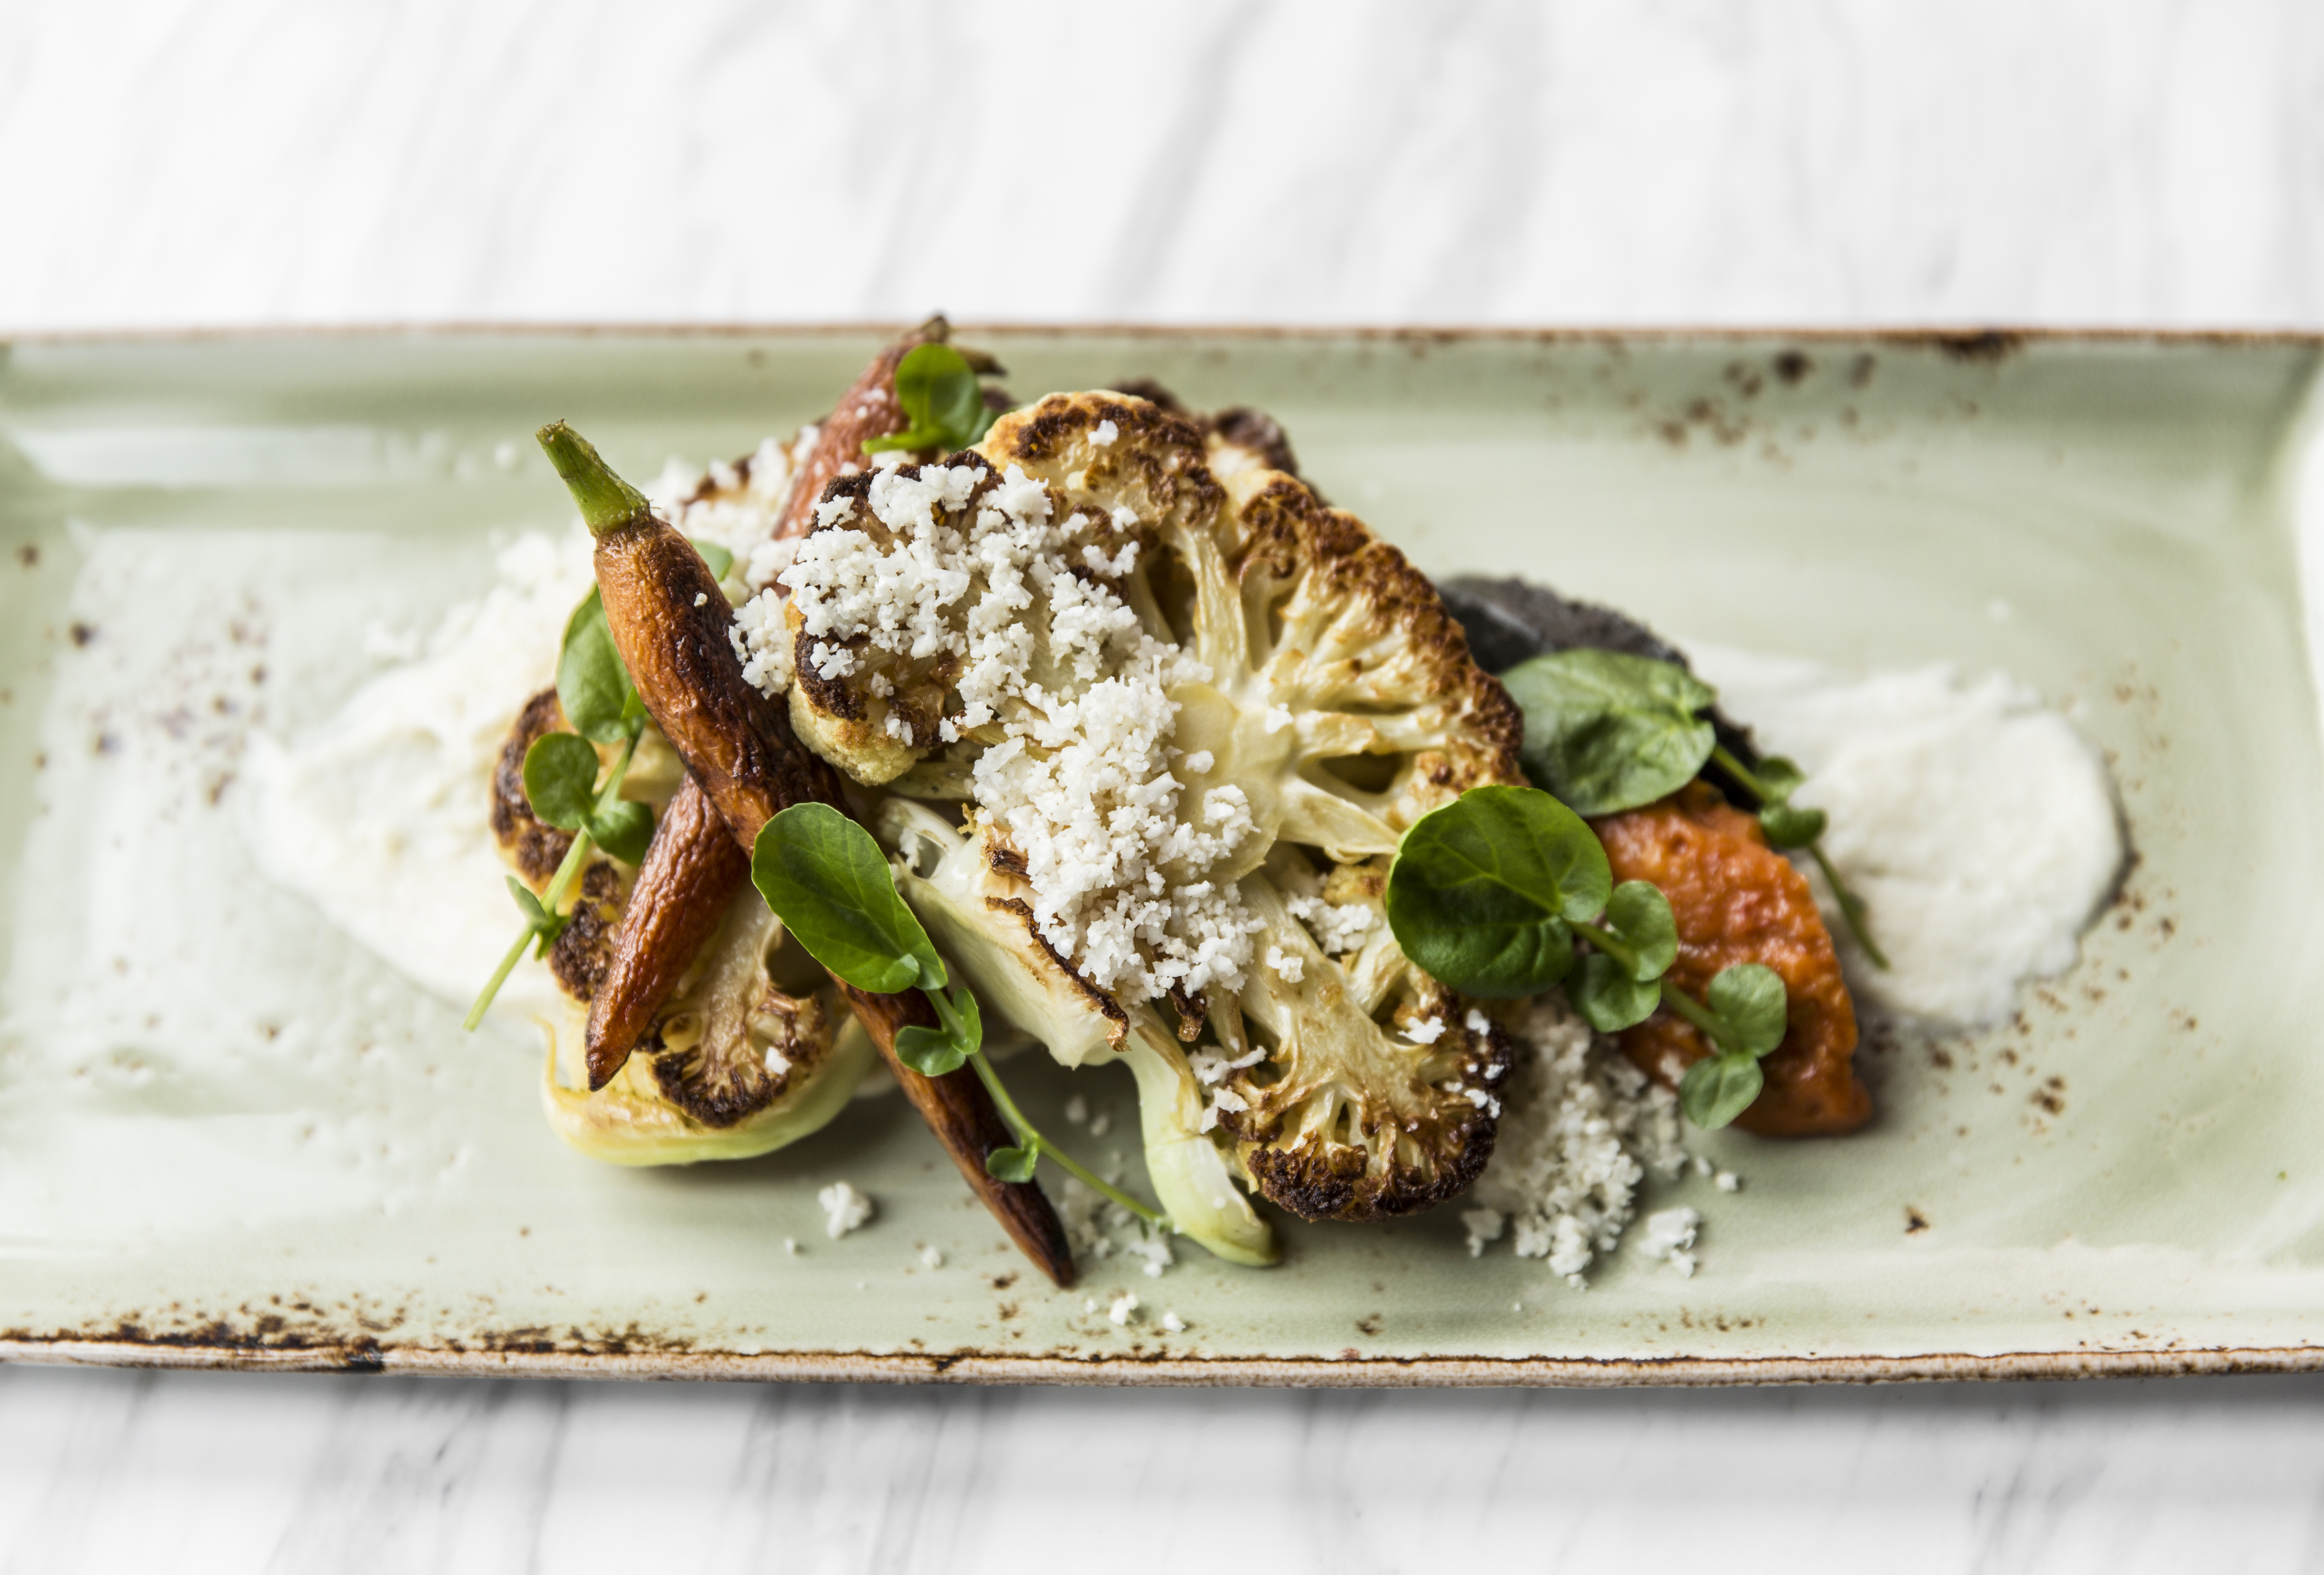 The Grilled Cauliflower Steak You'll Want to Make All Summer